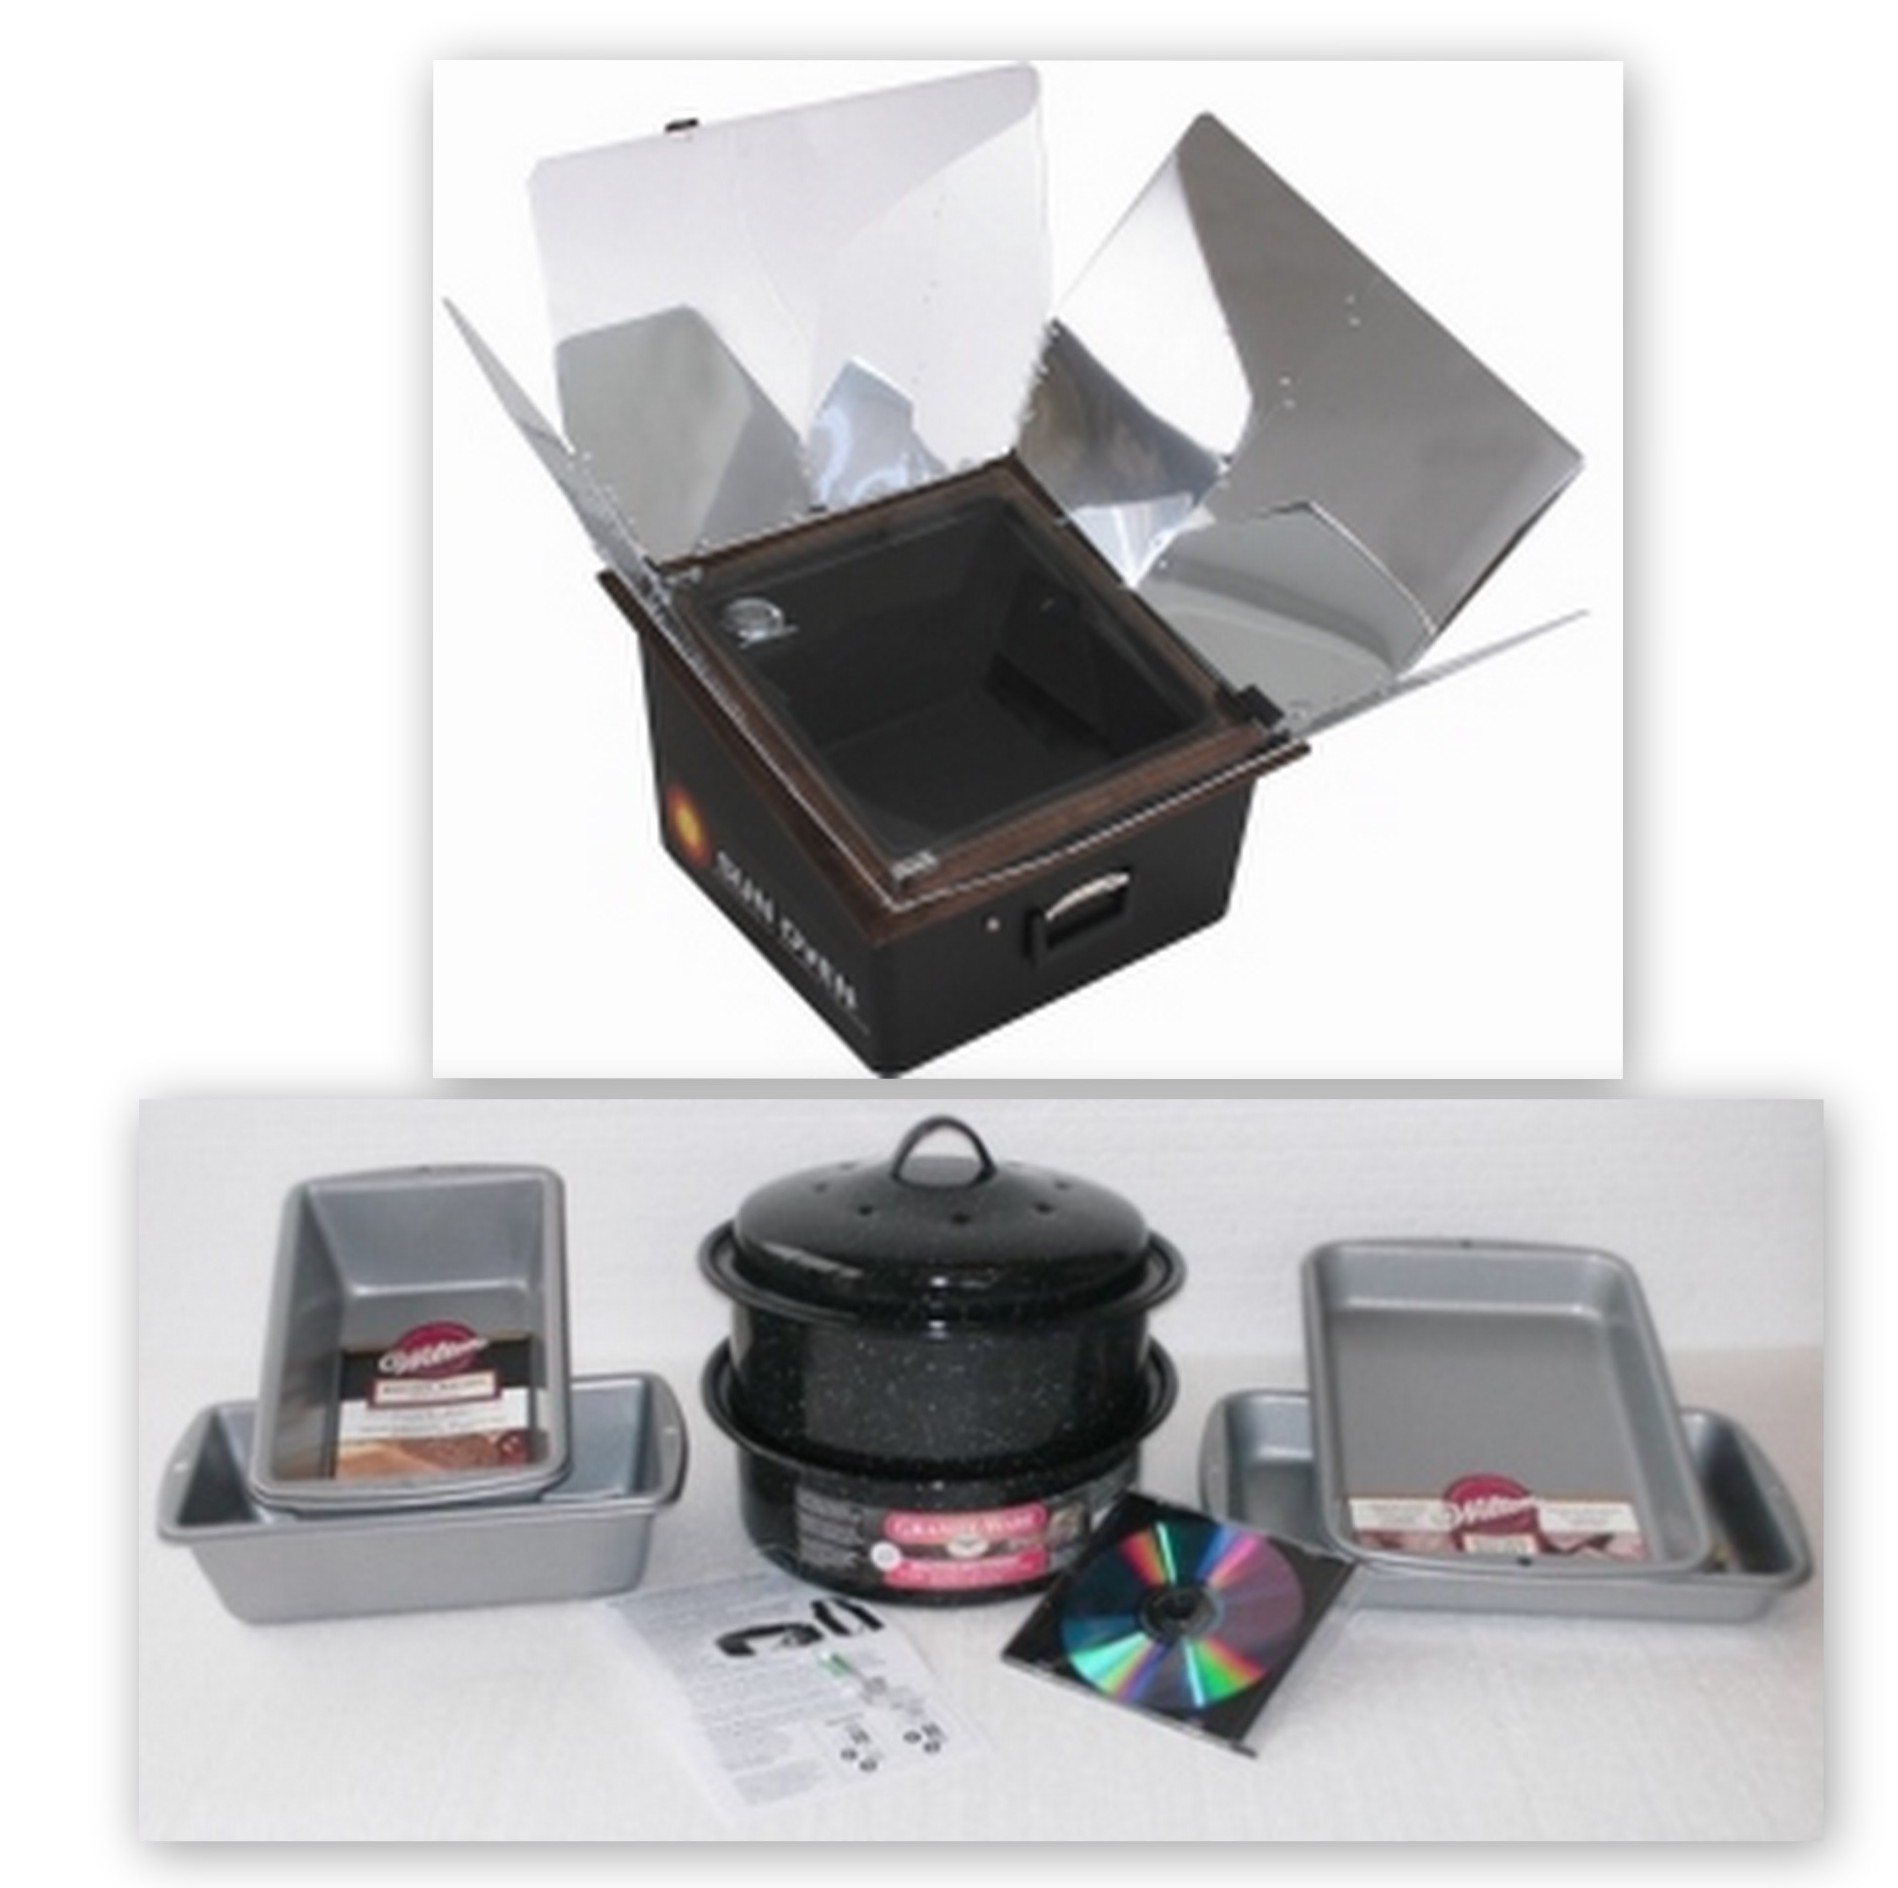 Sun Oven with Bakeware Preparedness Package